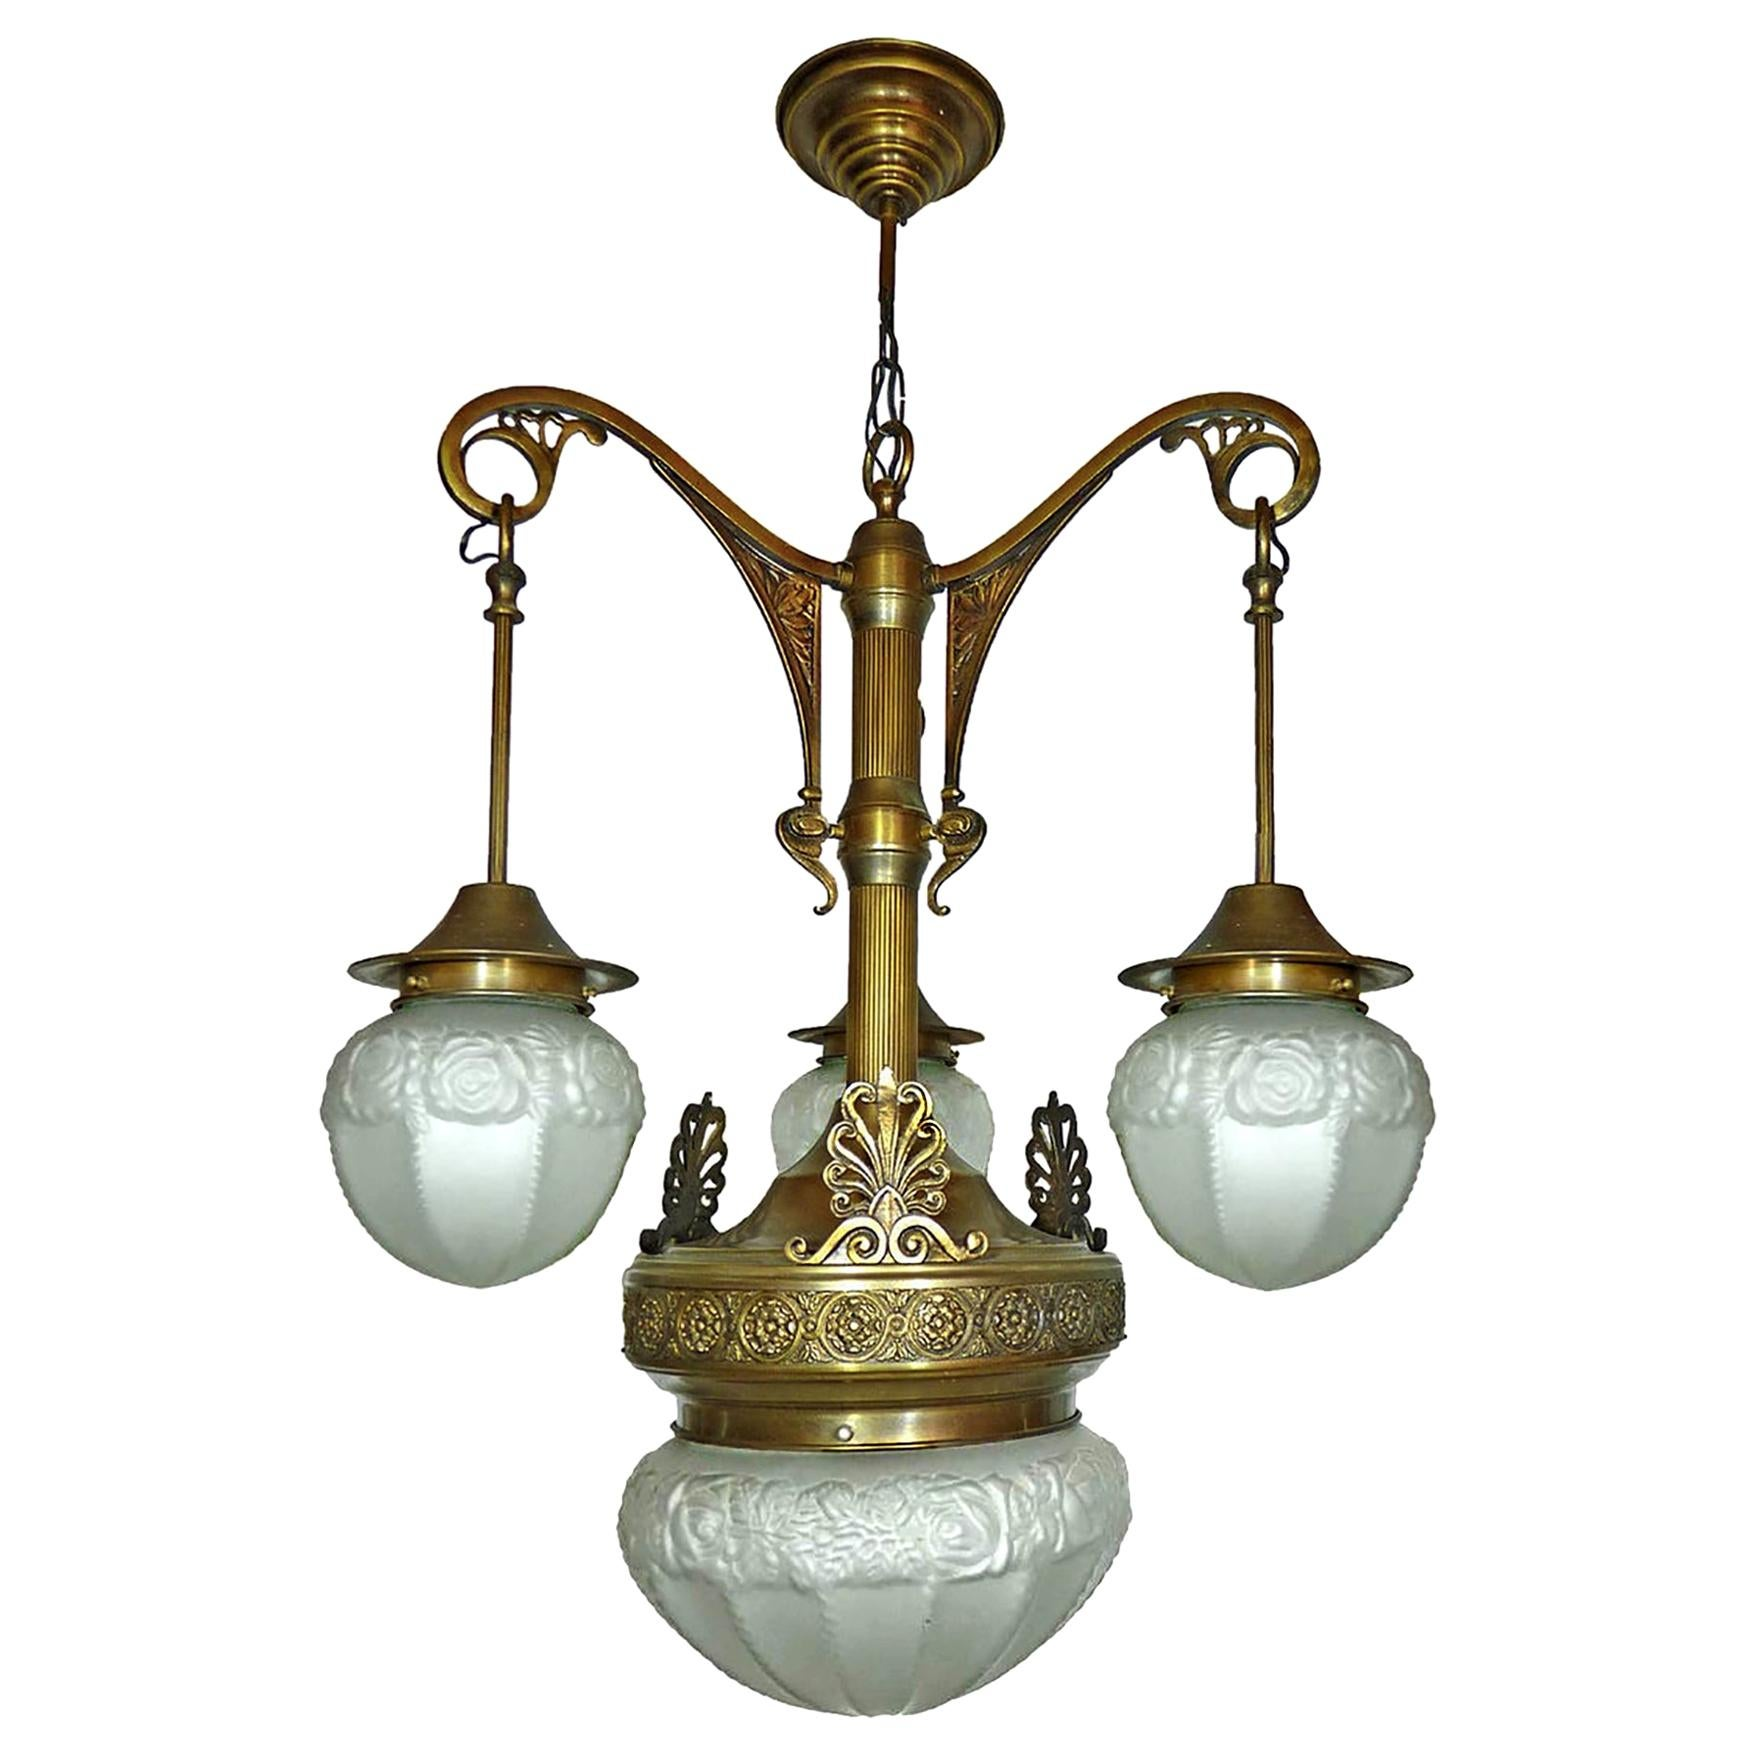 Fabulous French Art Deco Art Nouveau Brass Molded Frosted Glass Chandelier